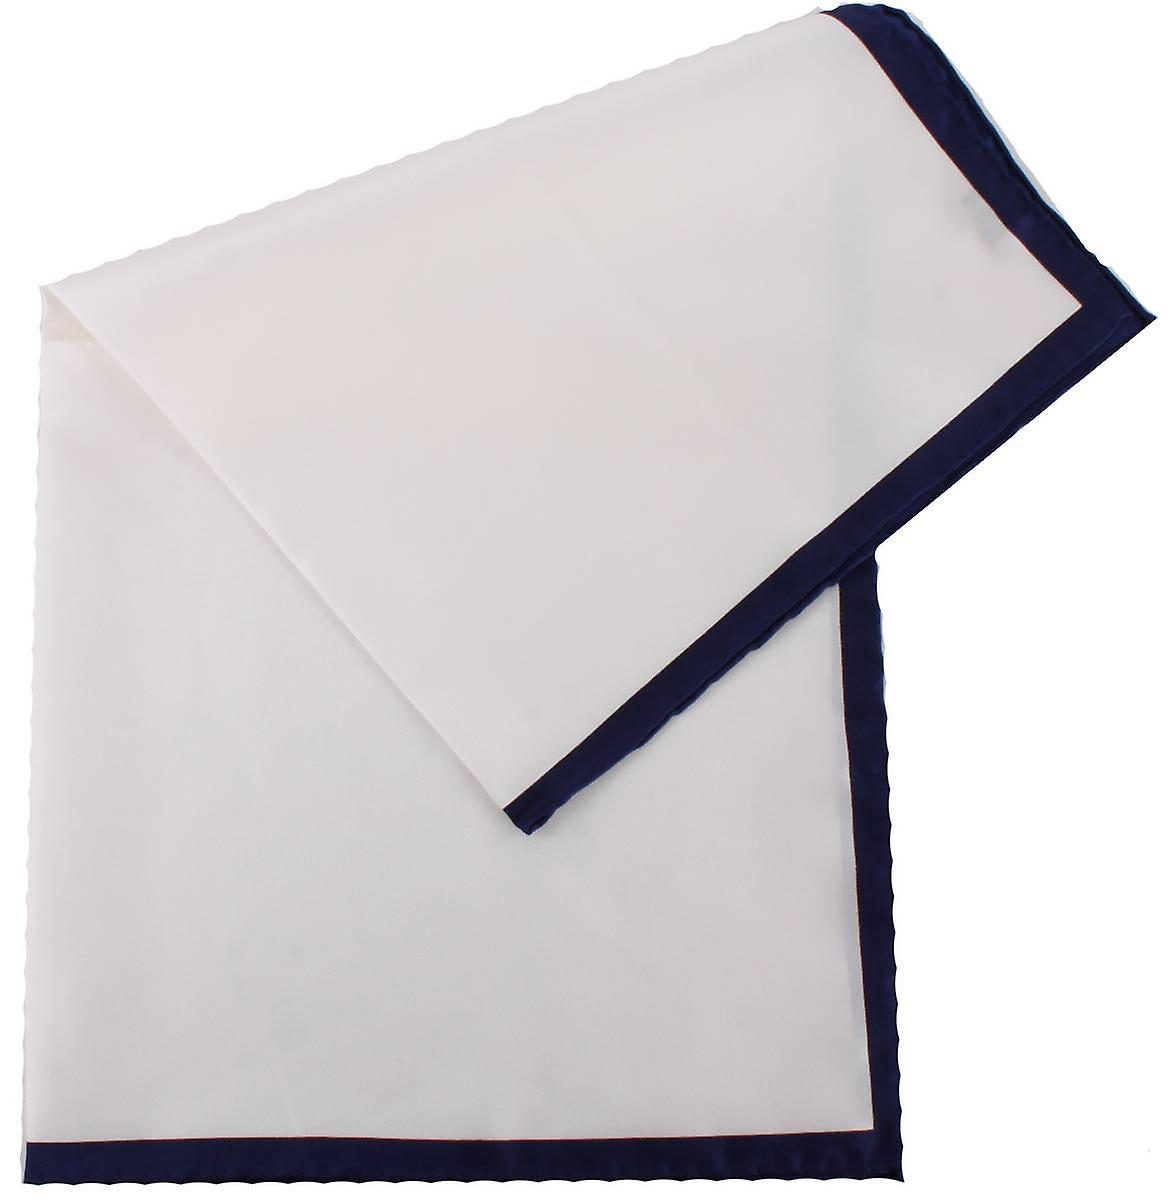 Michelsons of London Shoestring Border Handkerchief - White/Navy